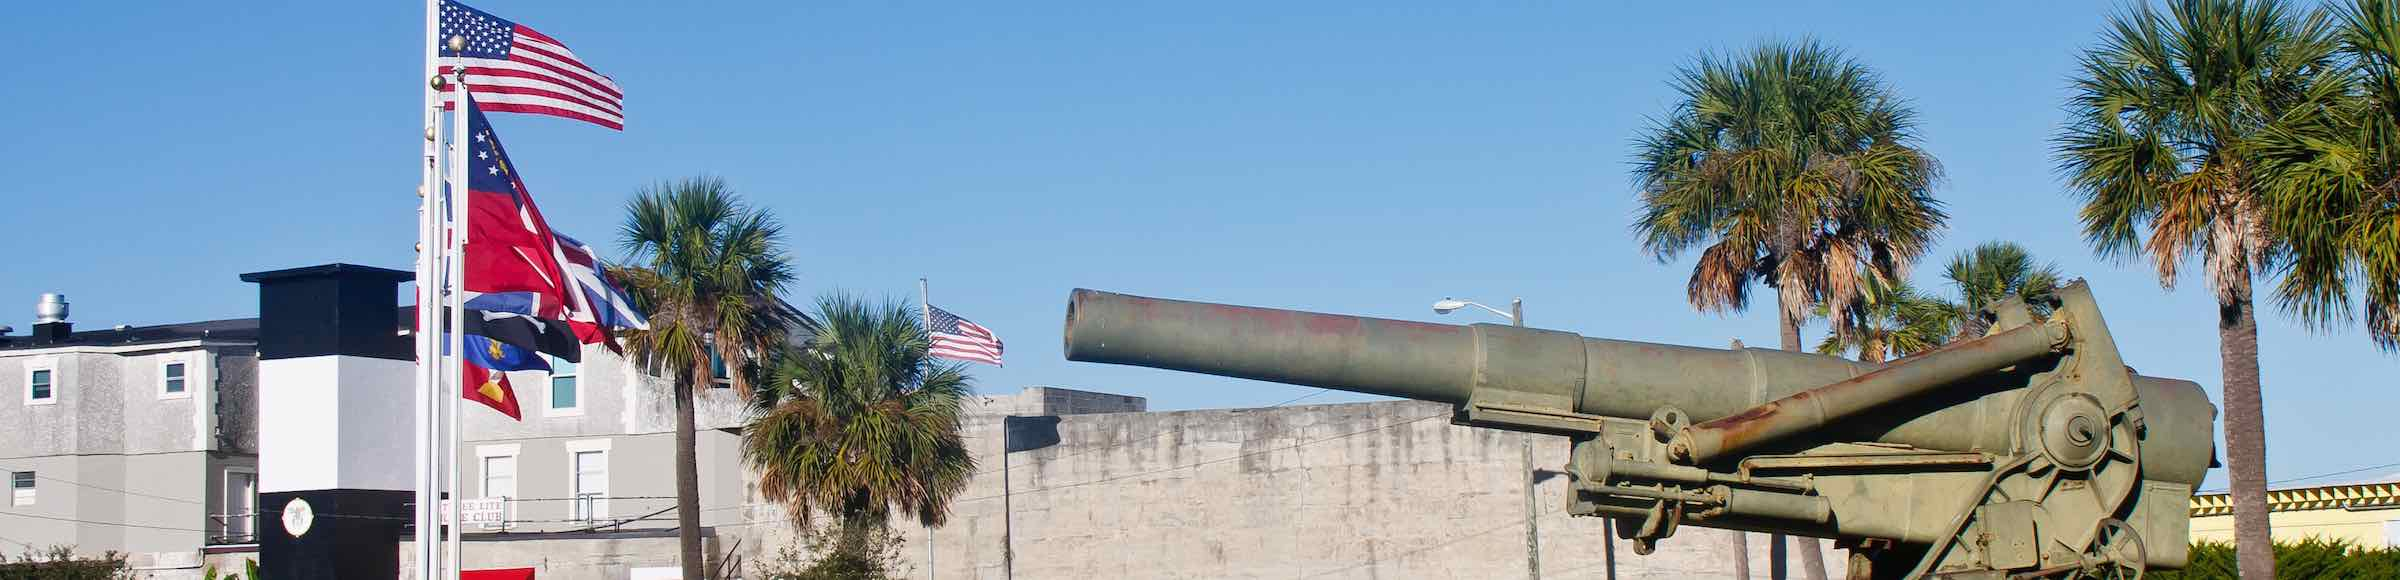 Modern artillery in front of the decommissioned Fort Screven, Tybee Island, GA.